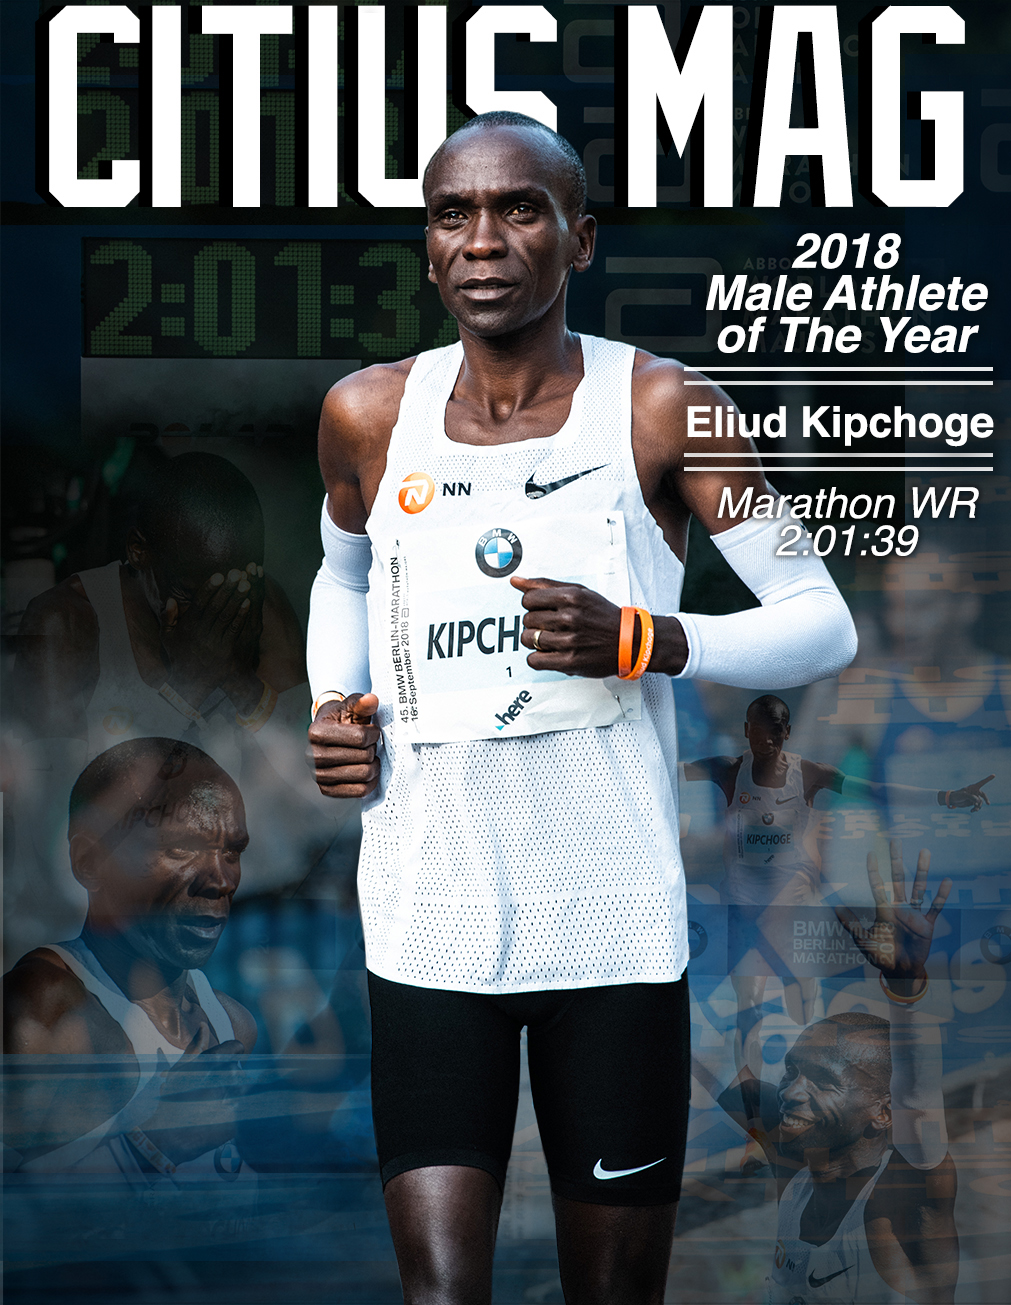 eliud kipchoge citius mag male athlete of the year 2018